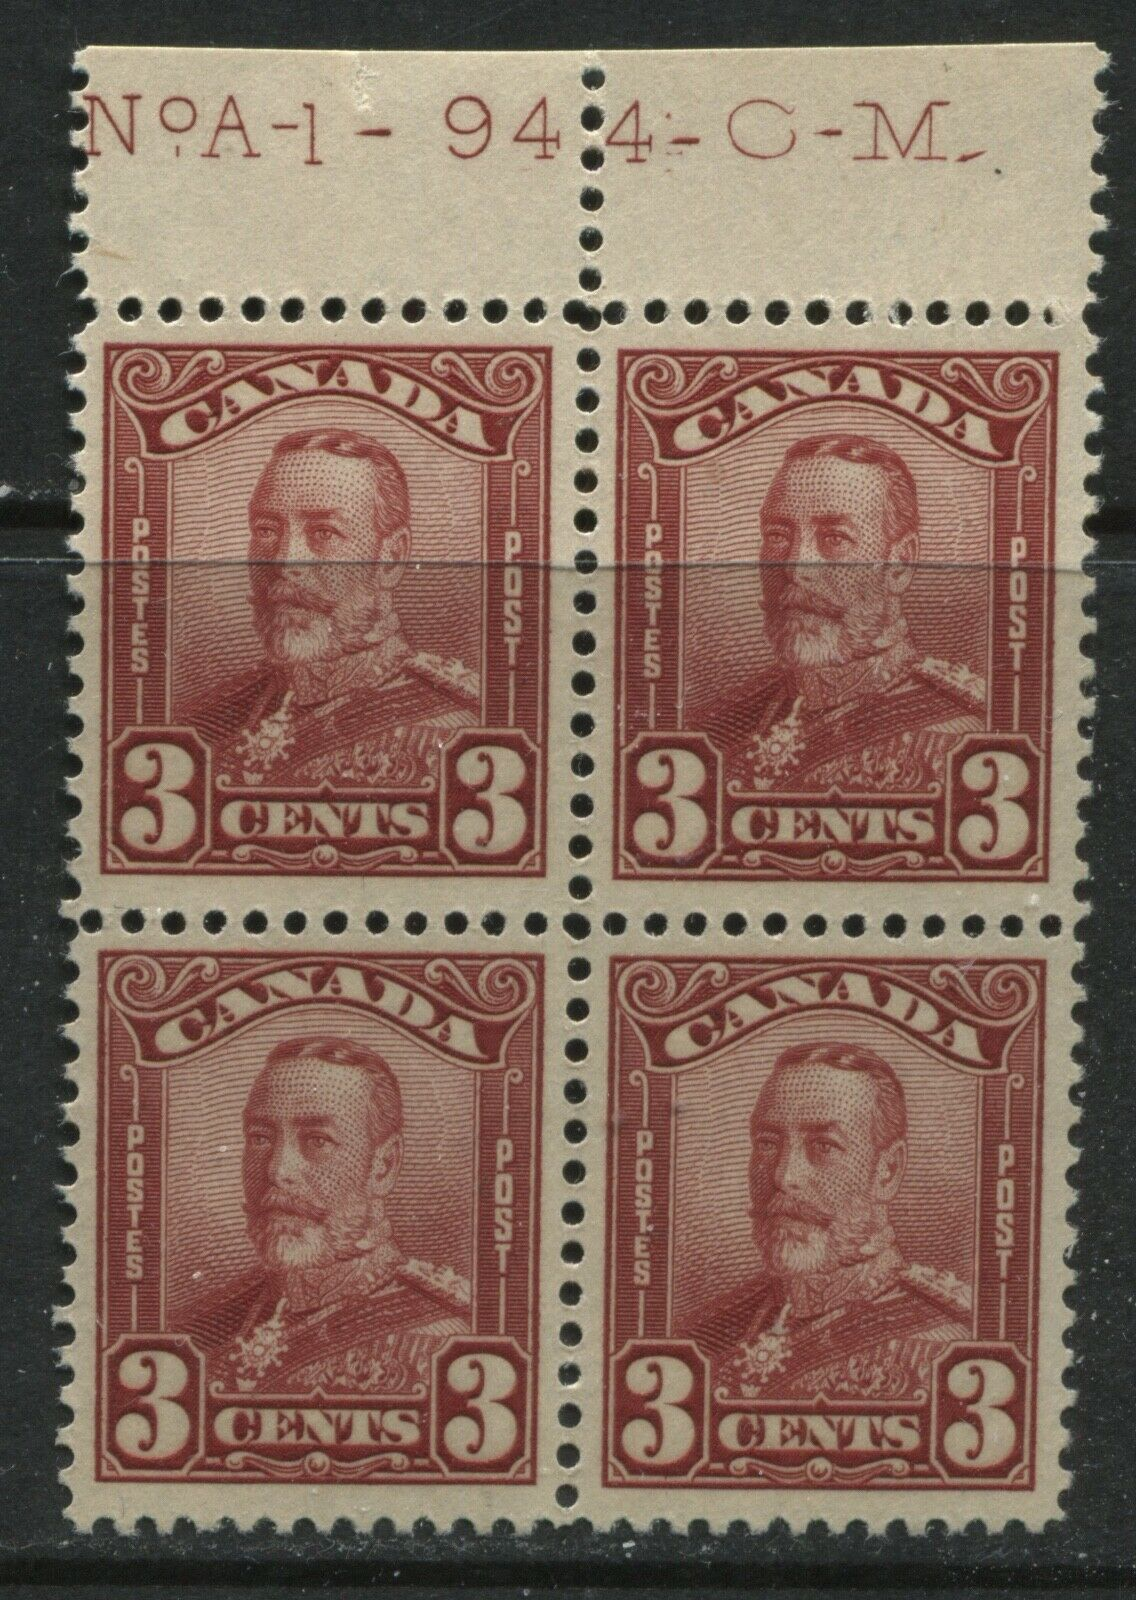 Canada 1929 3 cents red unmounted mint NH block of 4